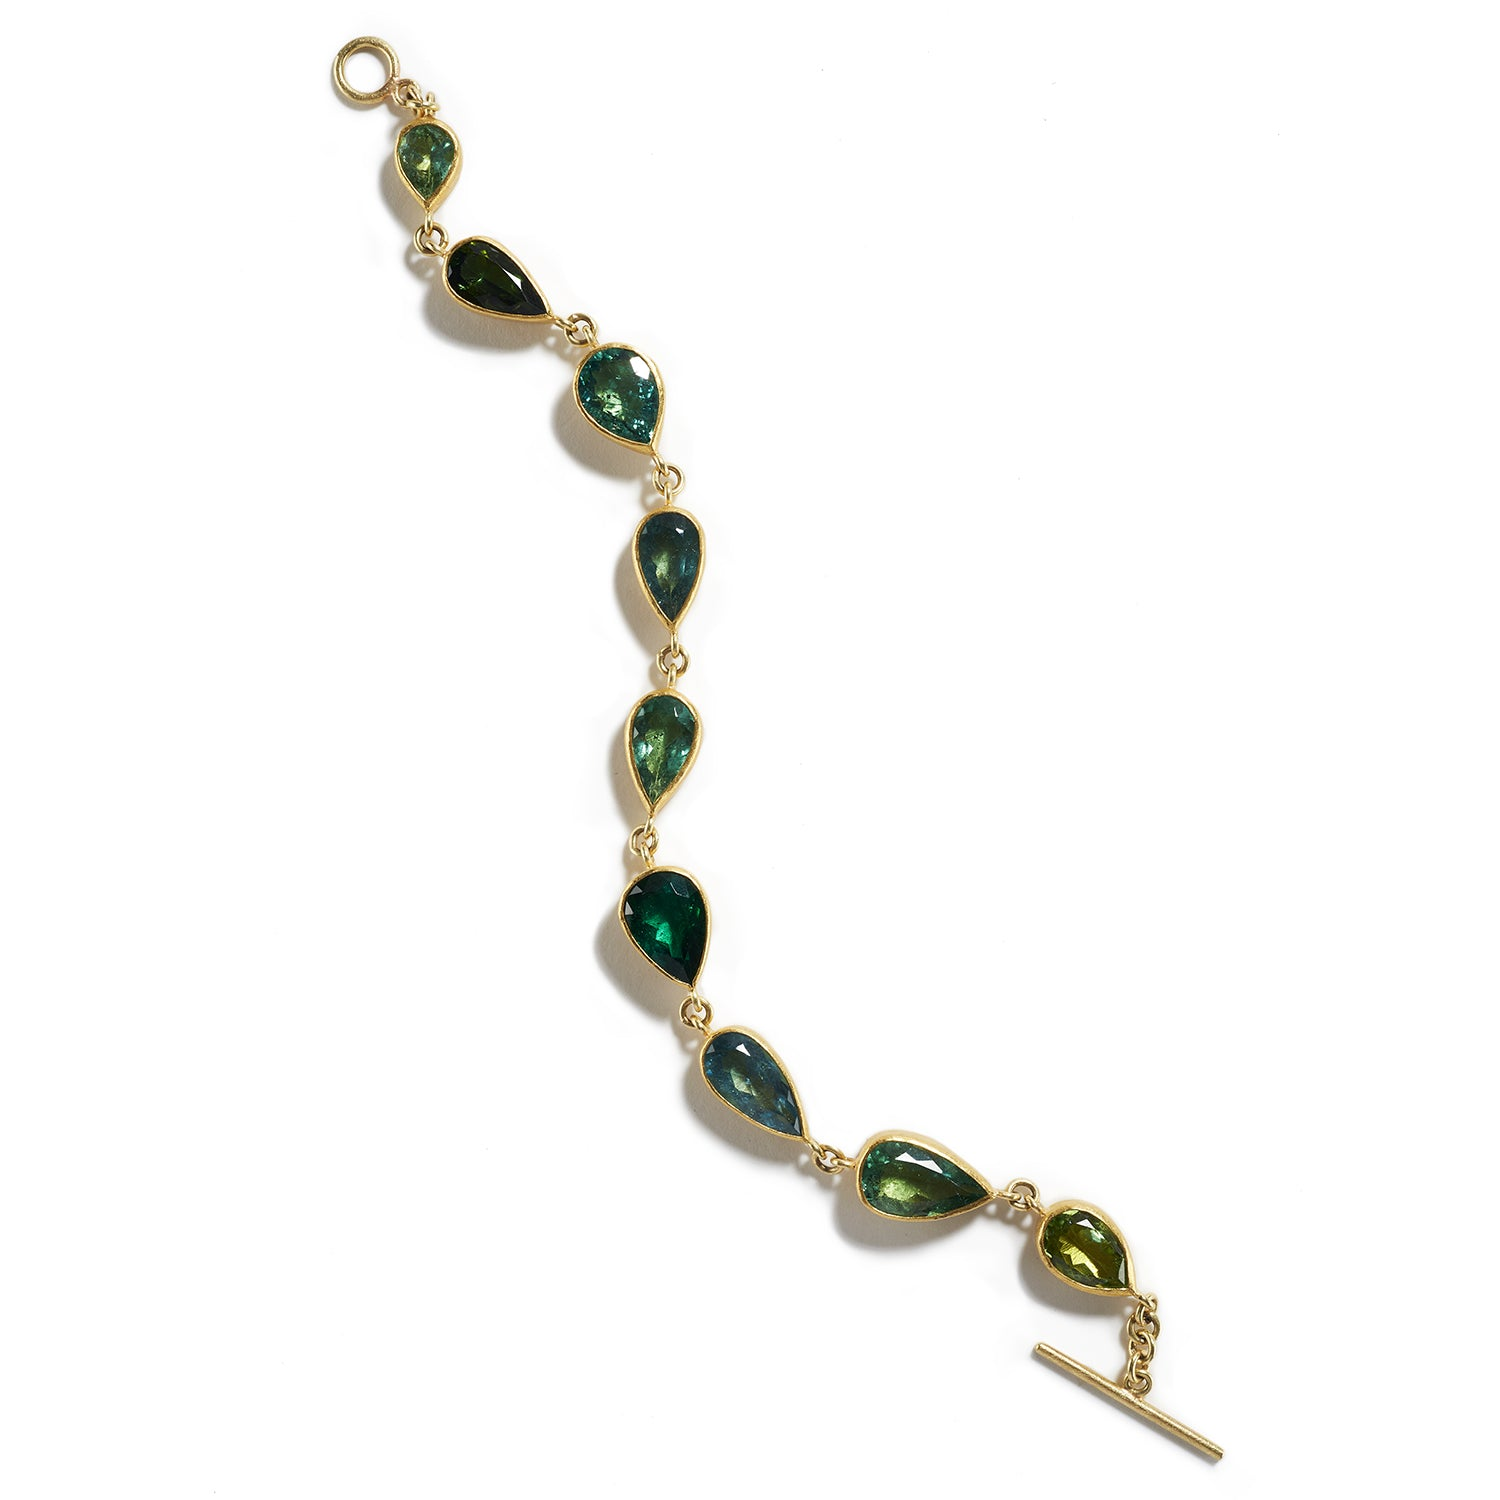 Shades of Green Tourmaline Bracelet